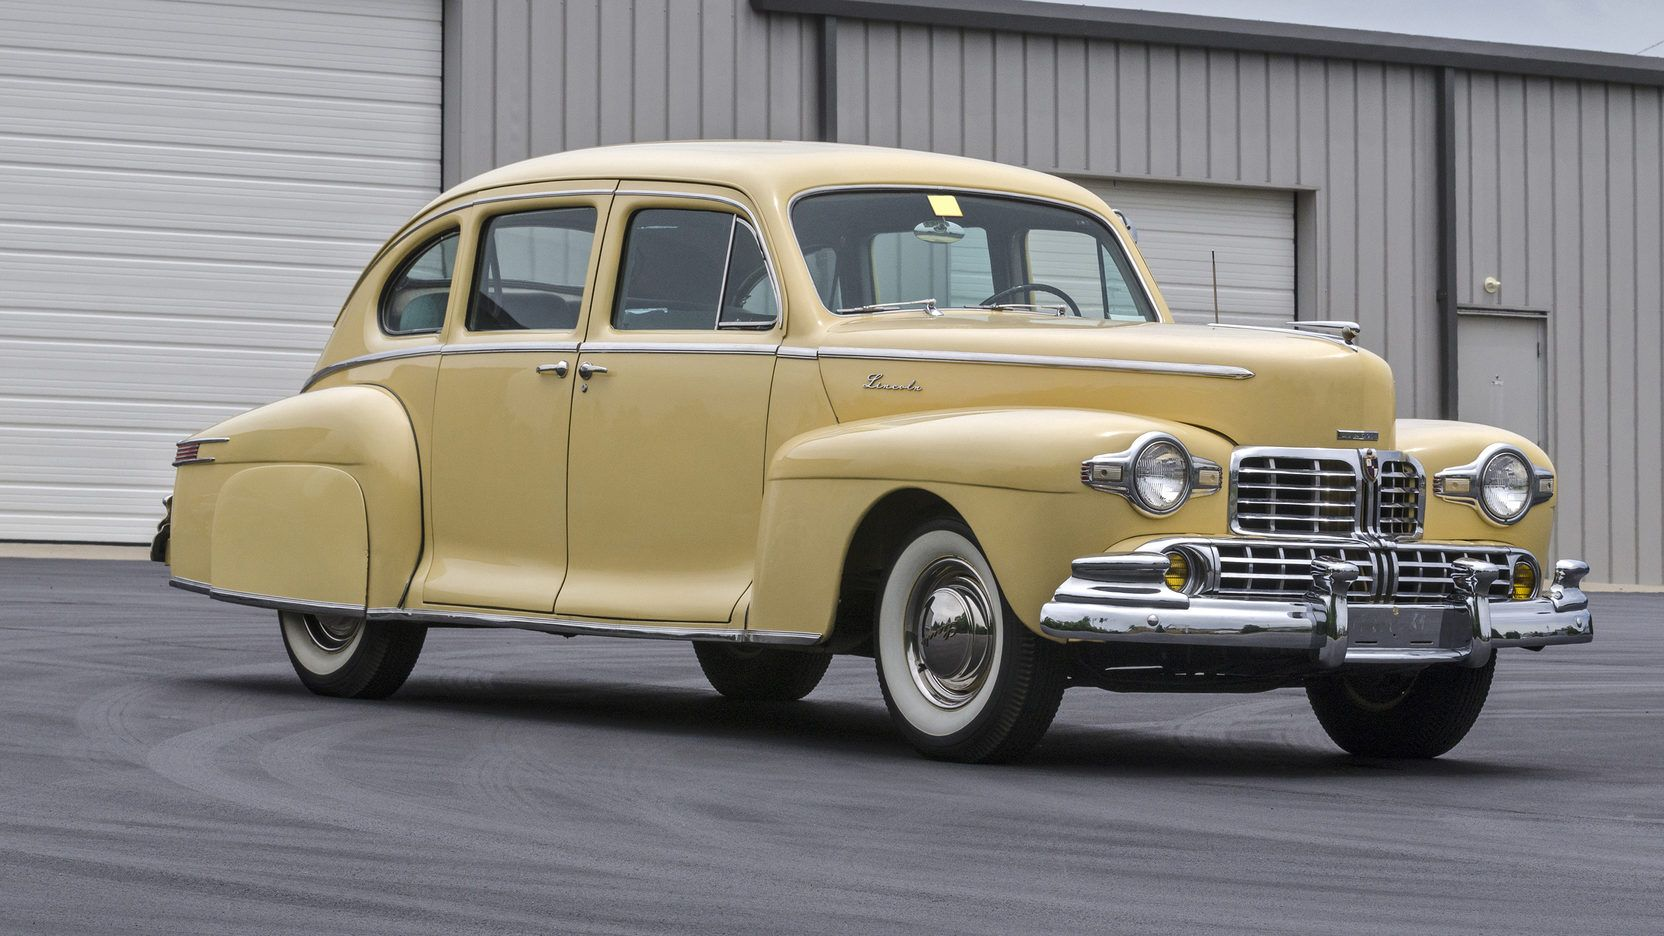 1947 Lincoln Zephyr presented as Lot T96 at Louisville, KY | Cars ...